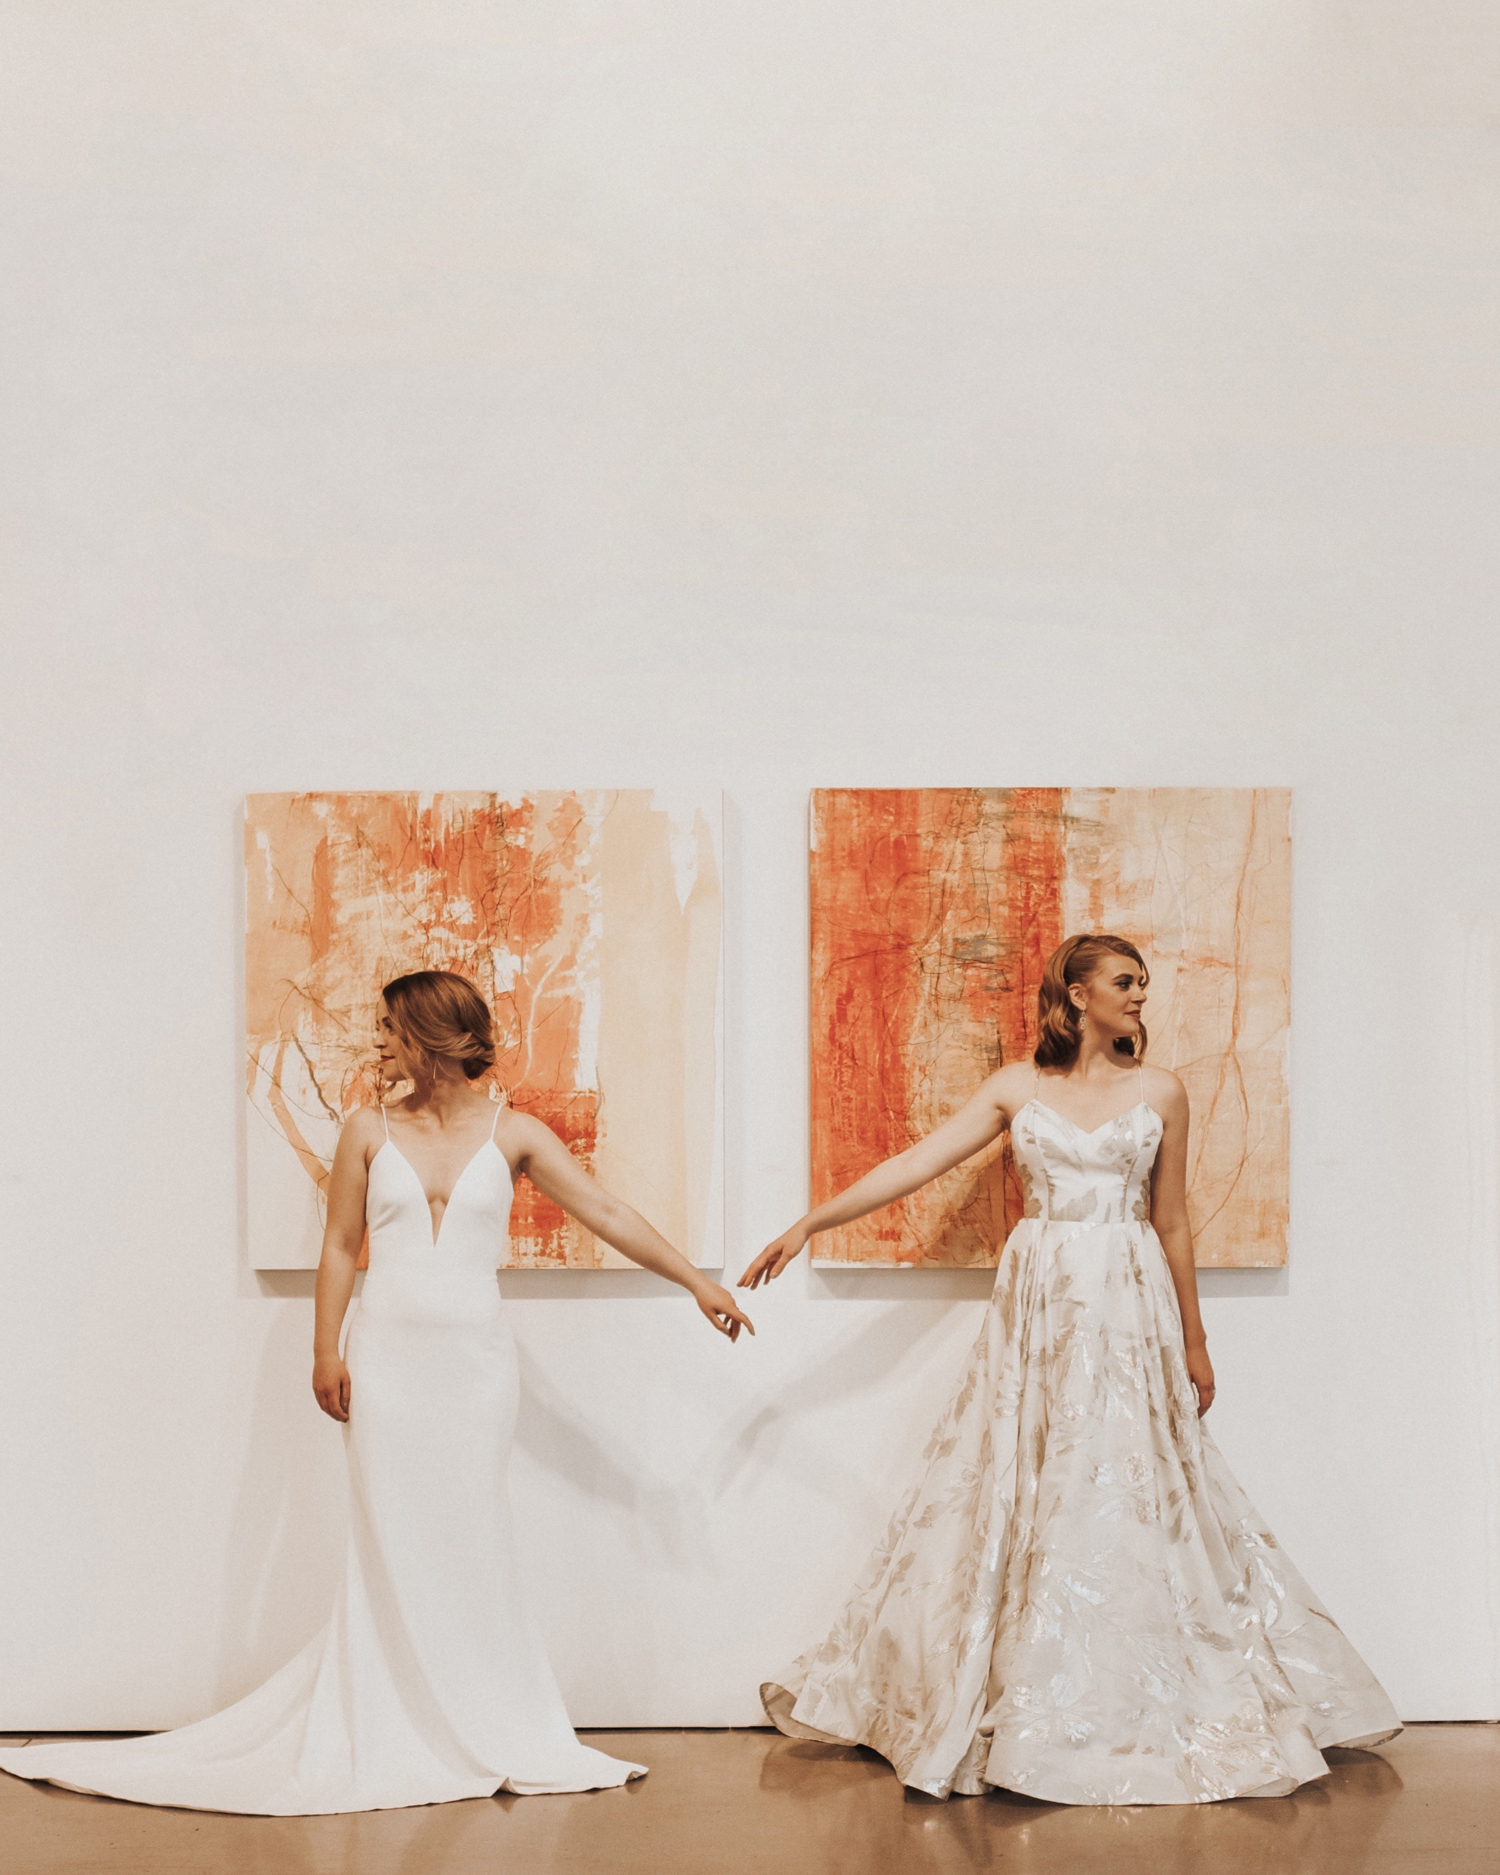 art-inspired wedding ideas brides posing in front of paintings in gallery